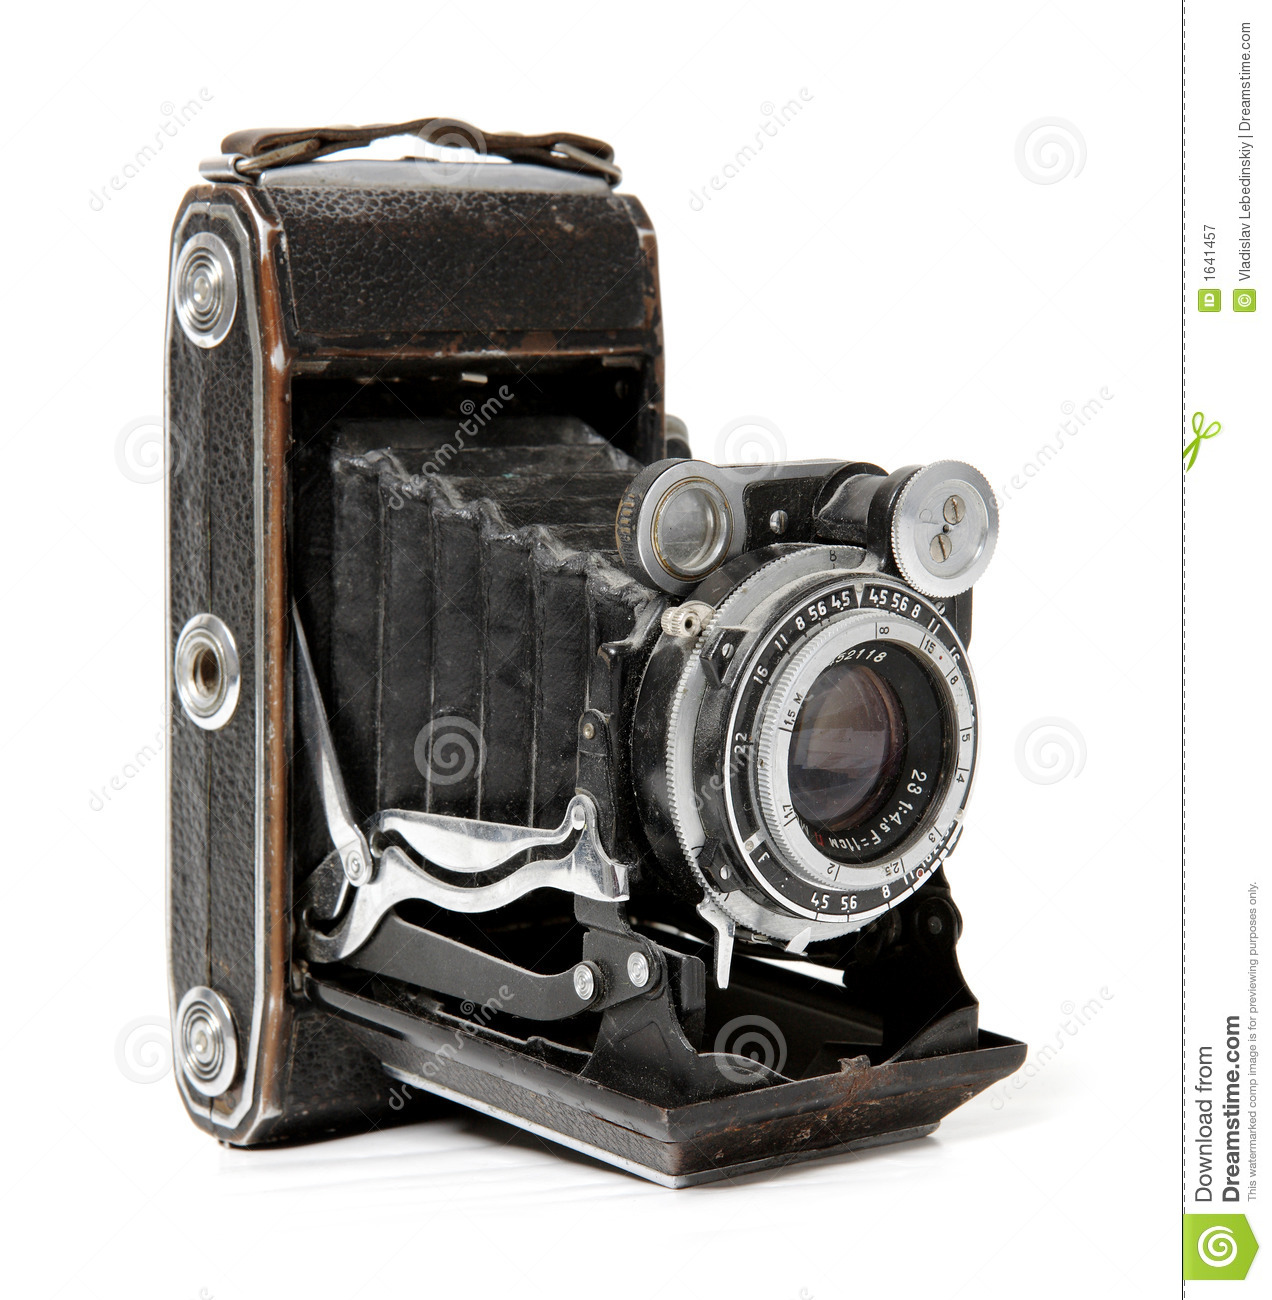 Old Camera. Royalty Free Stock Photography - Image: 1641457